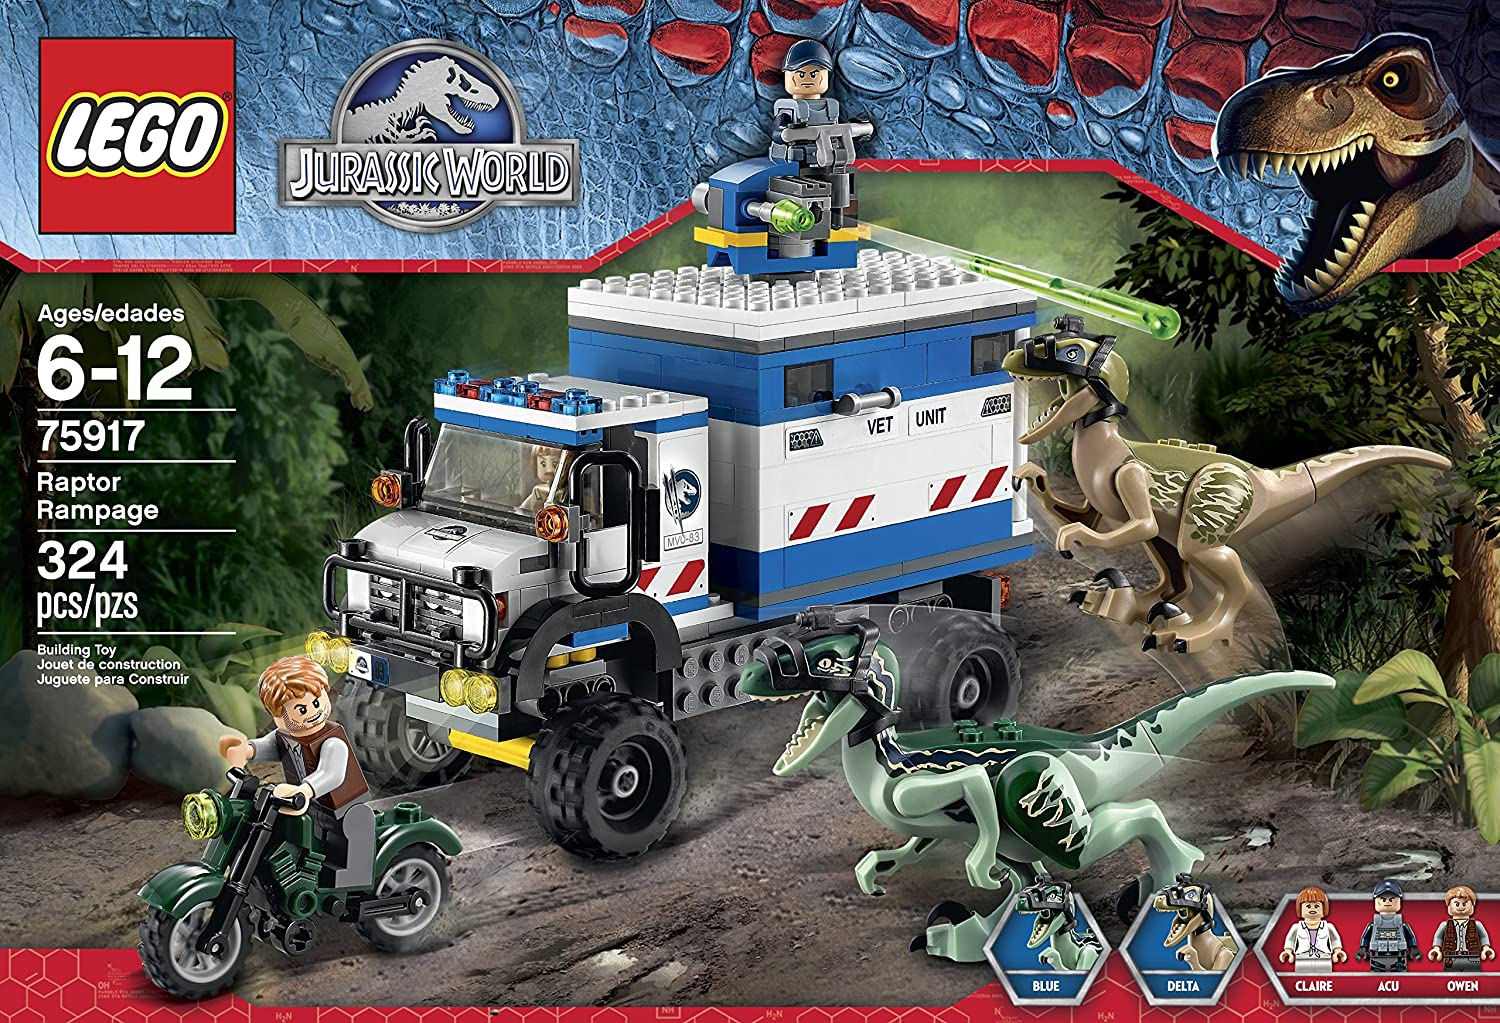 Amazon lego jurassic world raptor rampage 75917 building kit amazon lego jurassic world raptor rampage 75917 building kit toys games gumiabroncs Image collections